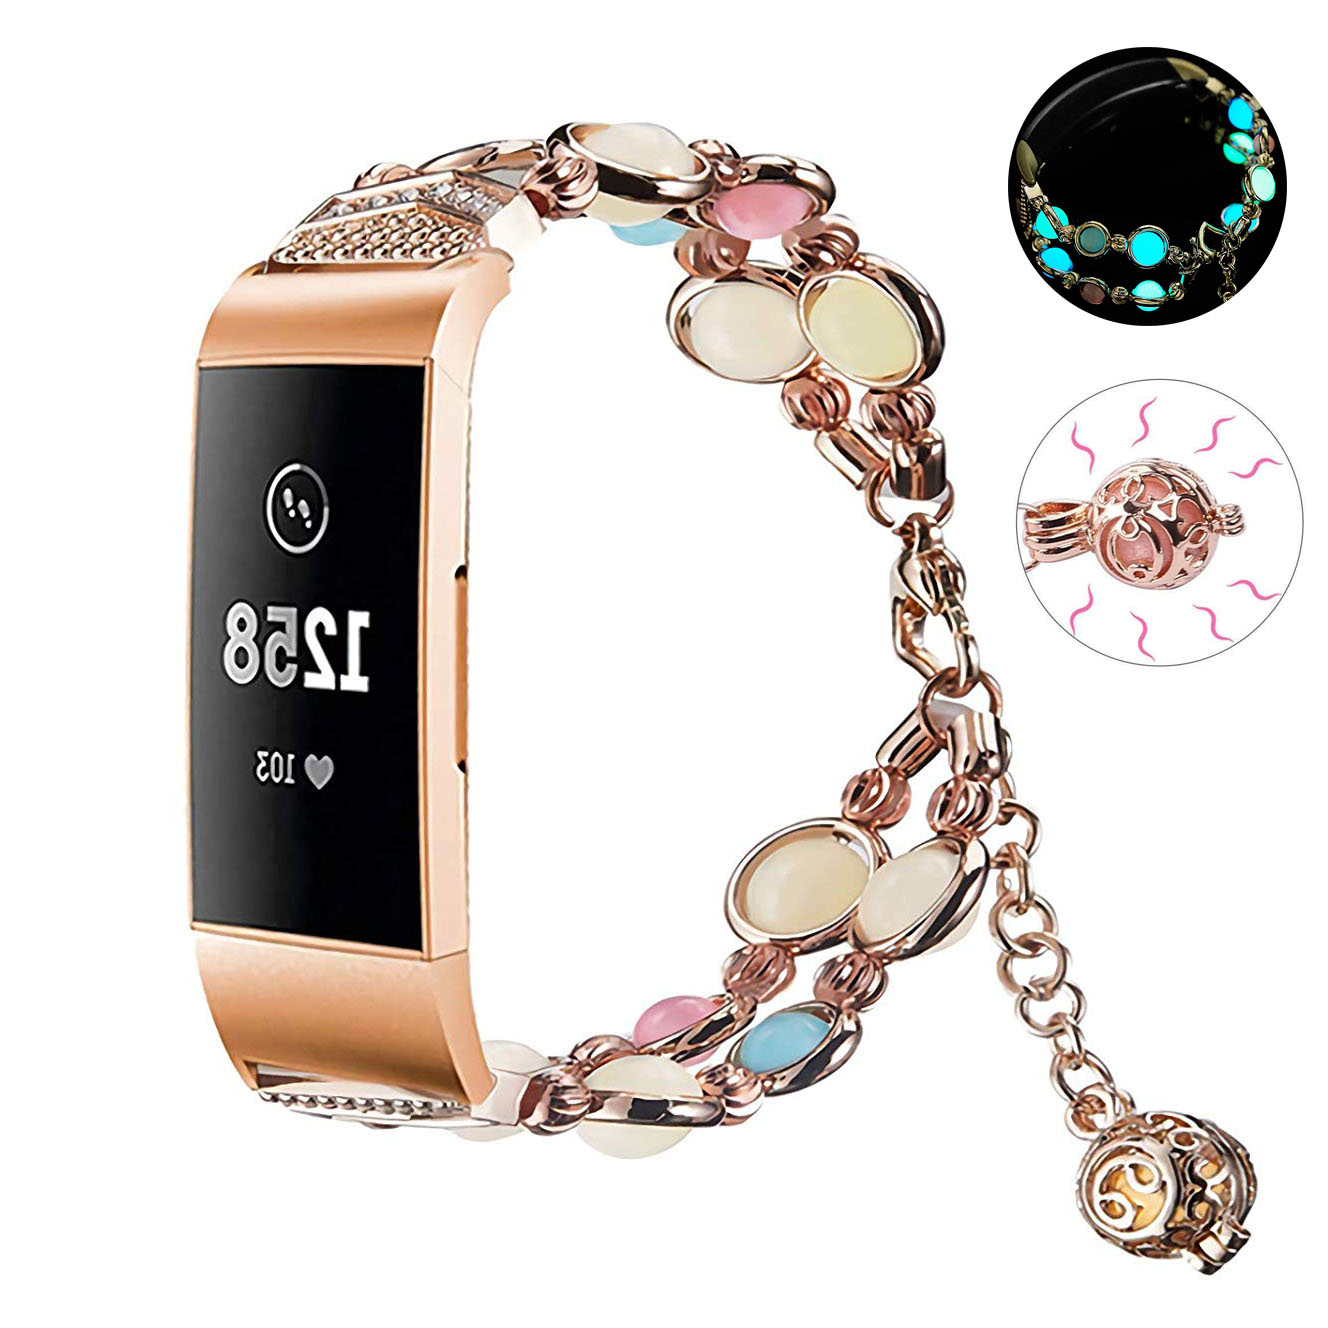 Essidi For Fitbit Charge 3 Smart Bracelet Strap Luminous Beads Stainless Steel Watch Band Loop For Fitbit Charge 3 Wristband|Smart Accessories| |  - title=